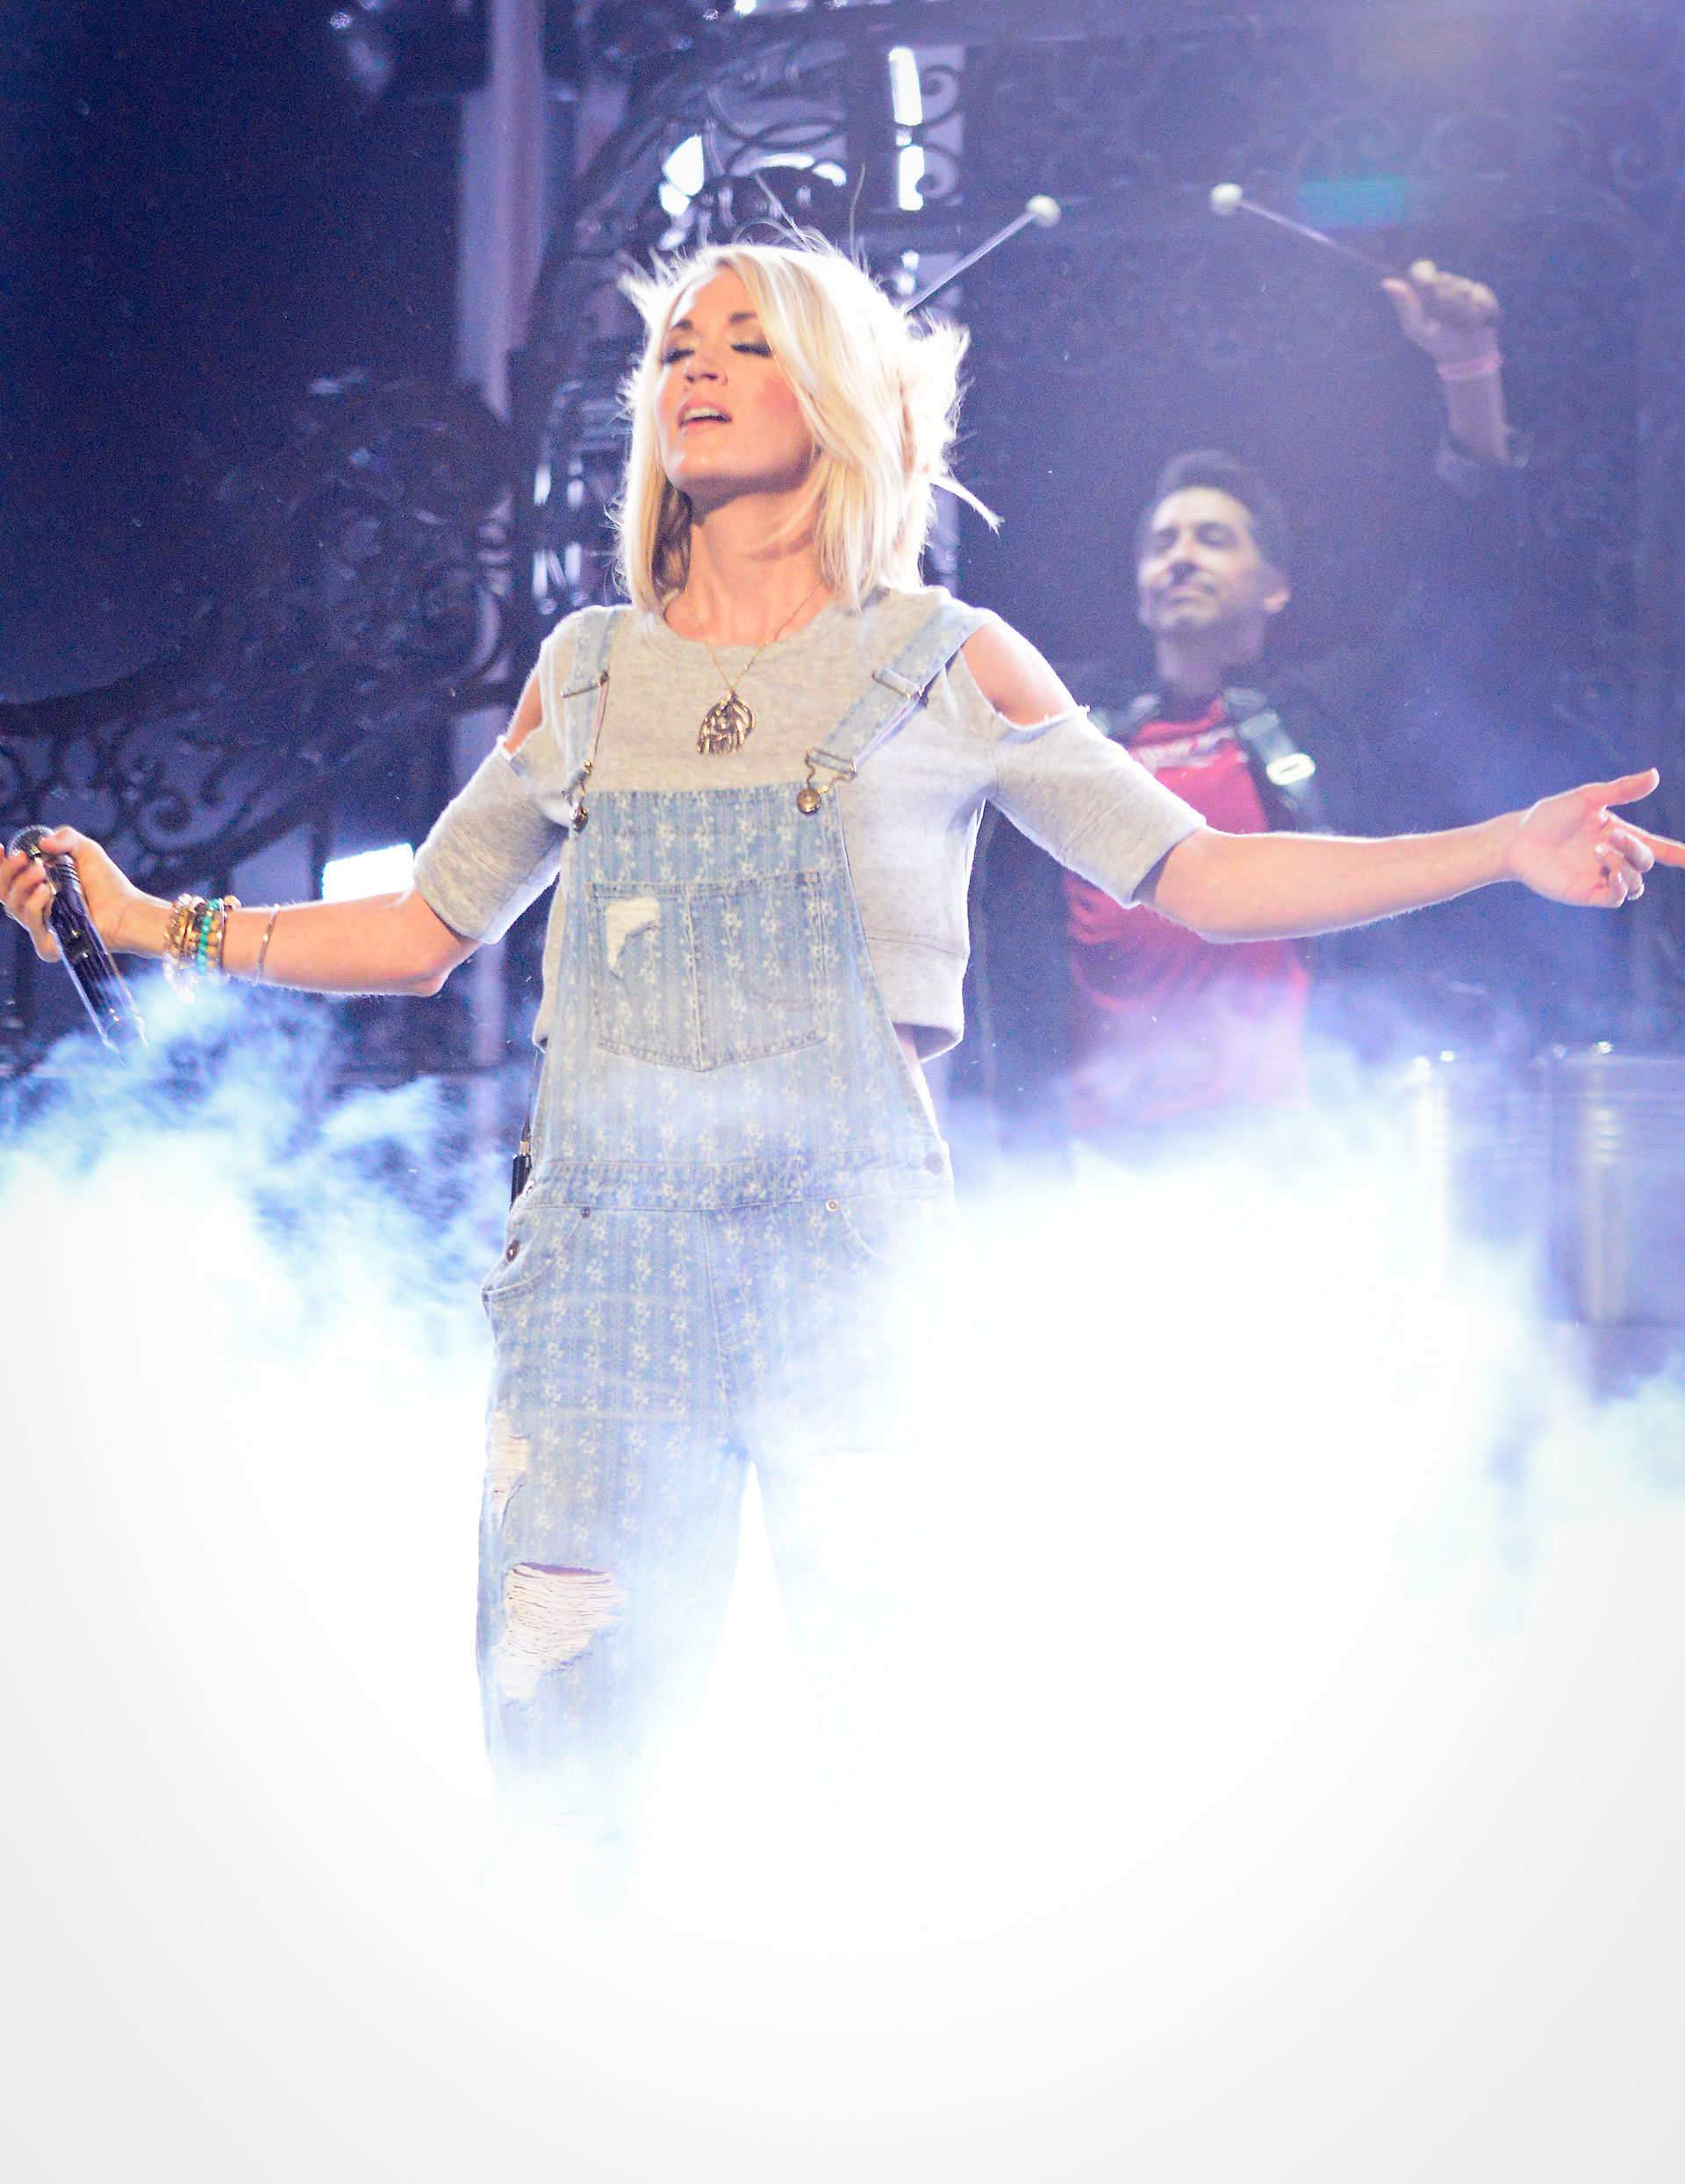 Carrie Underwood prepares to blow fans away at Country Music's Party of the Year®